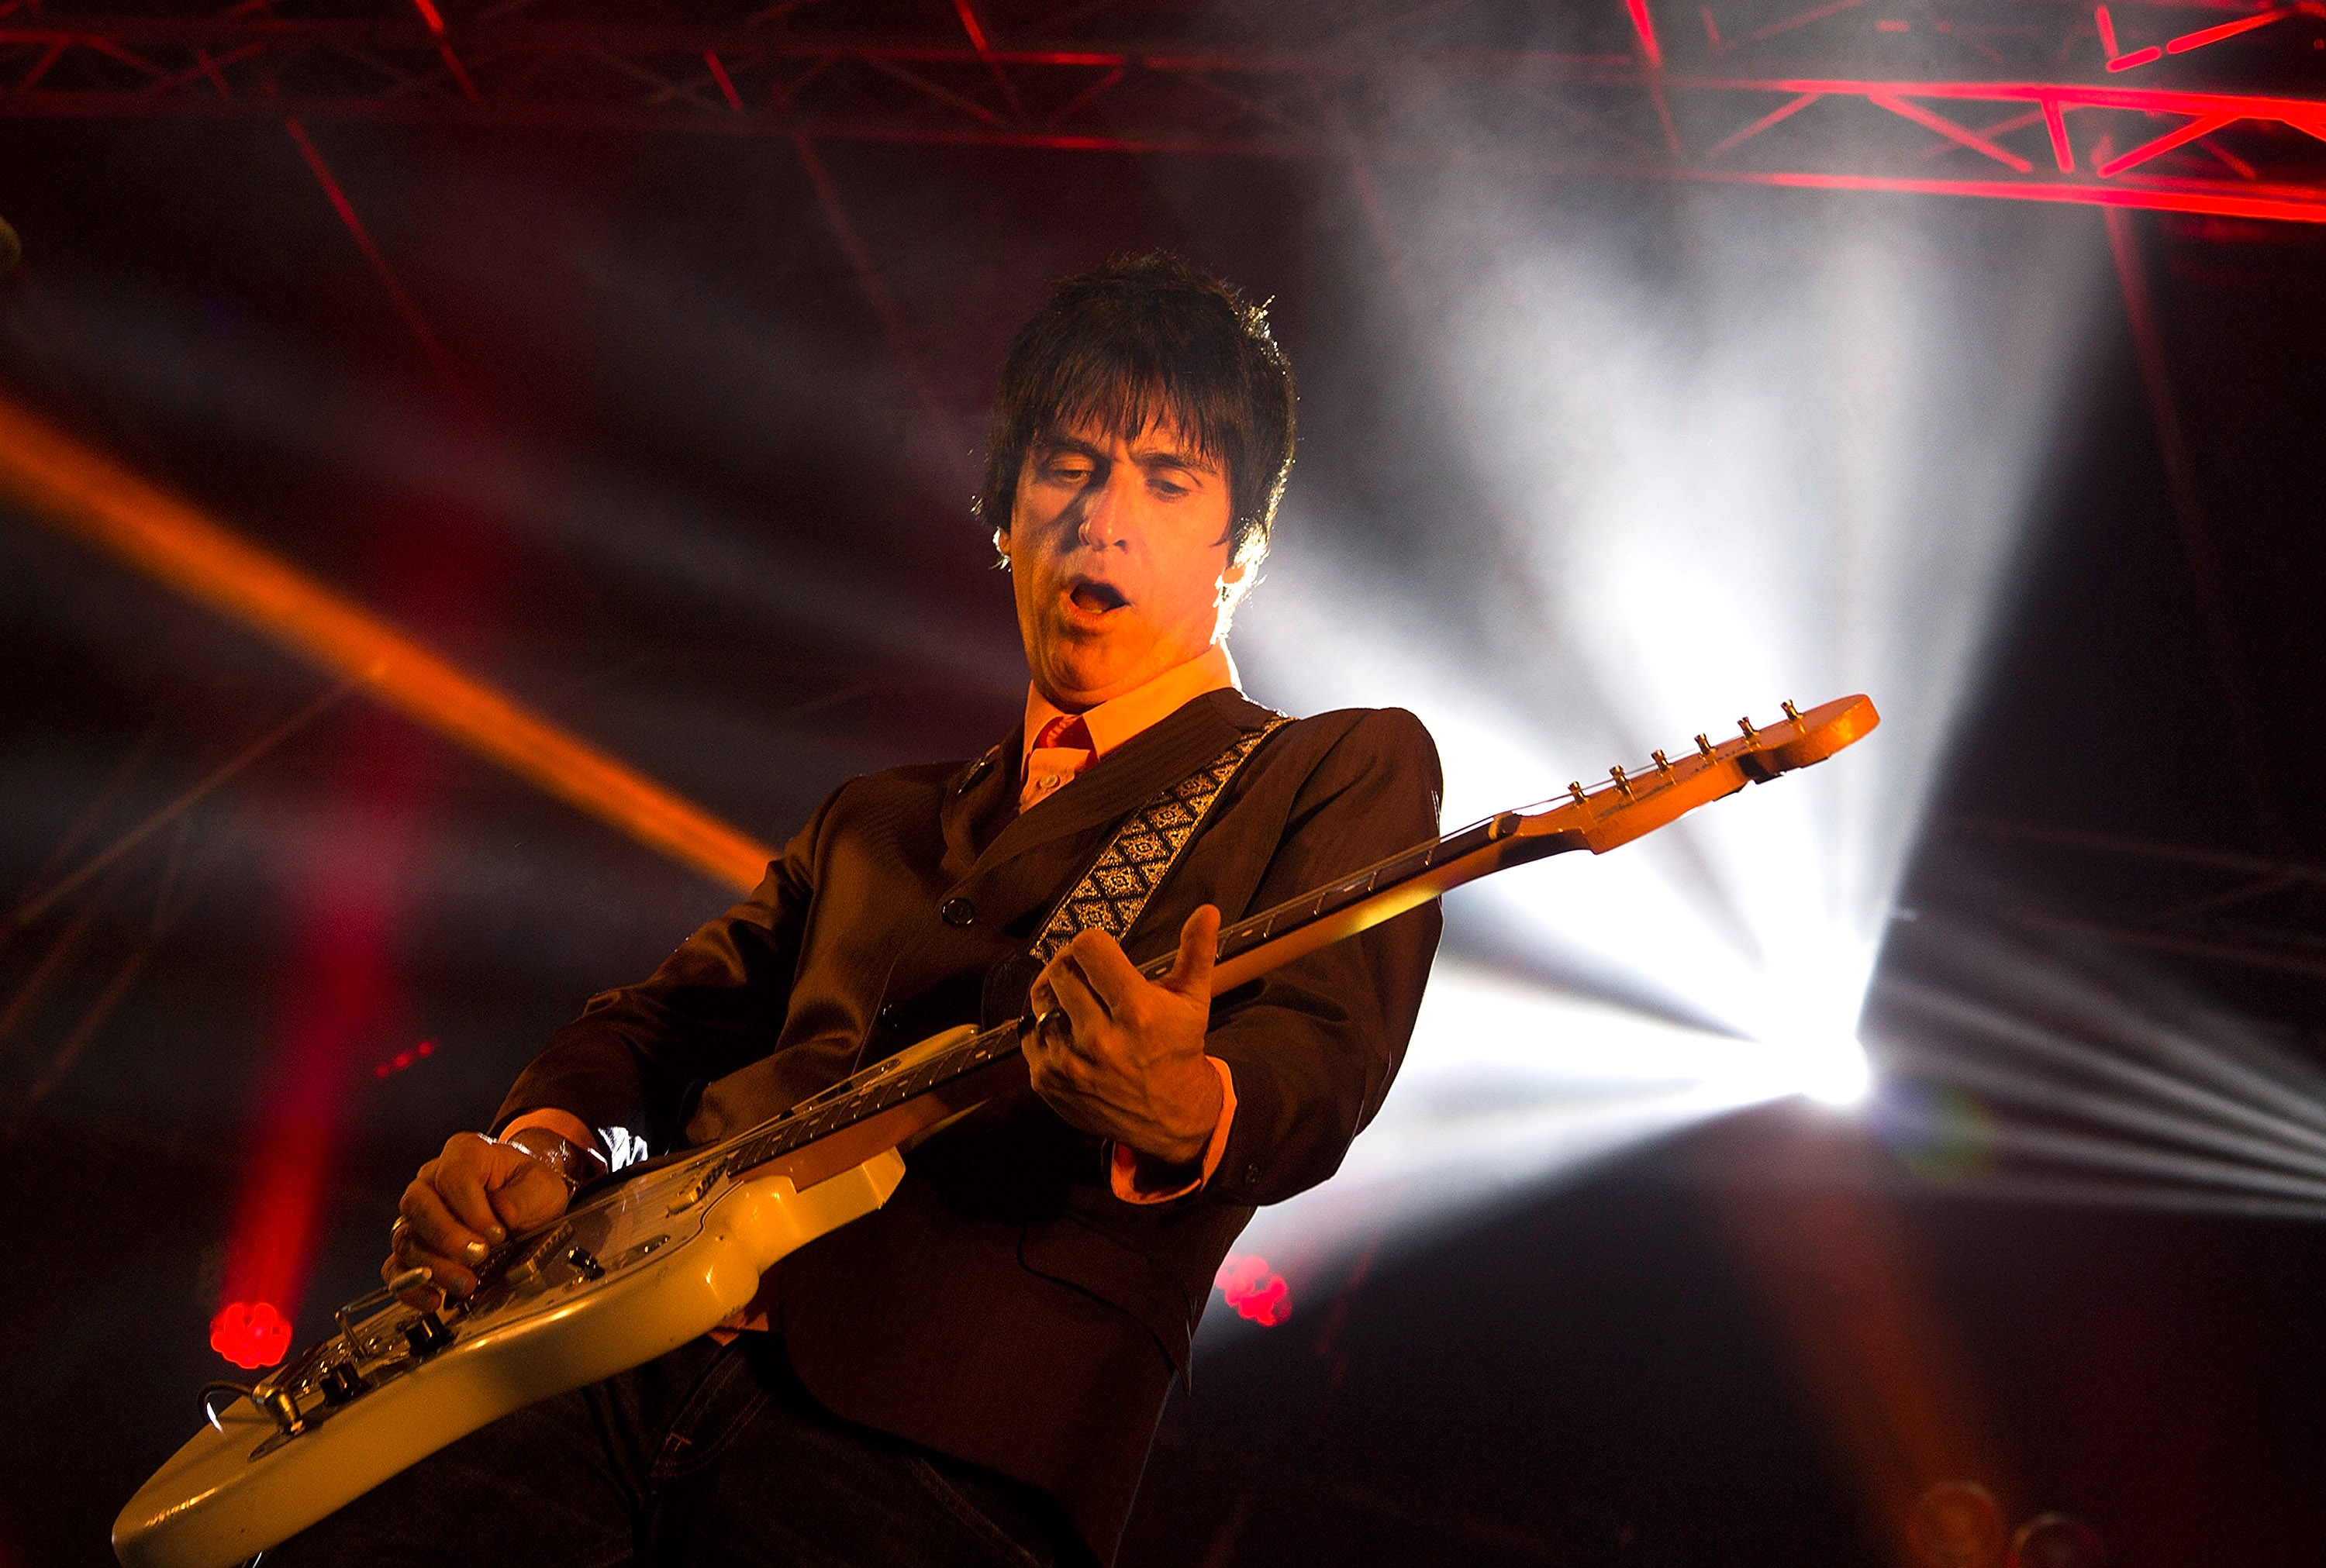 THIRSK, ENGLAND - JULY 26:  Johnny Marr performs on stage at Deer Shed Festival at Baldersbey Park, Topcliffe on July 26, 201